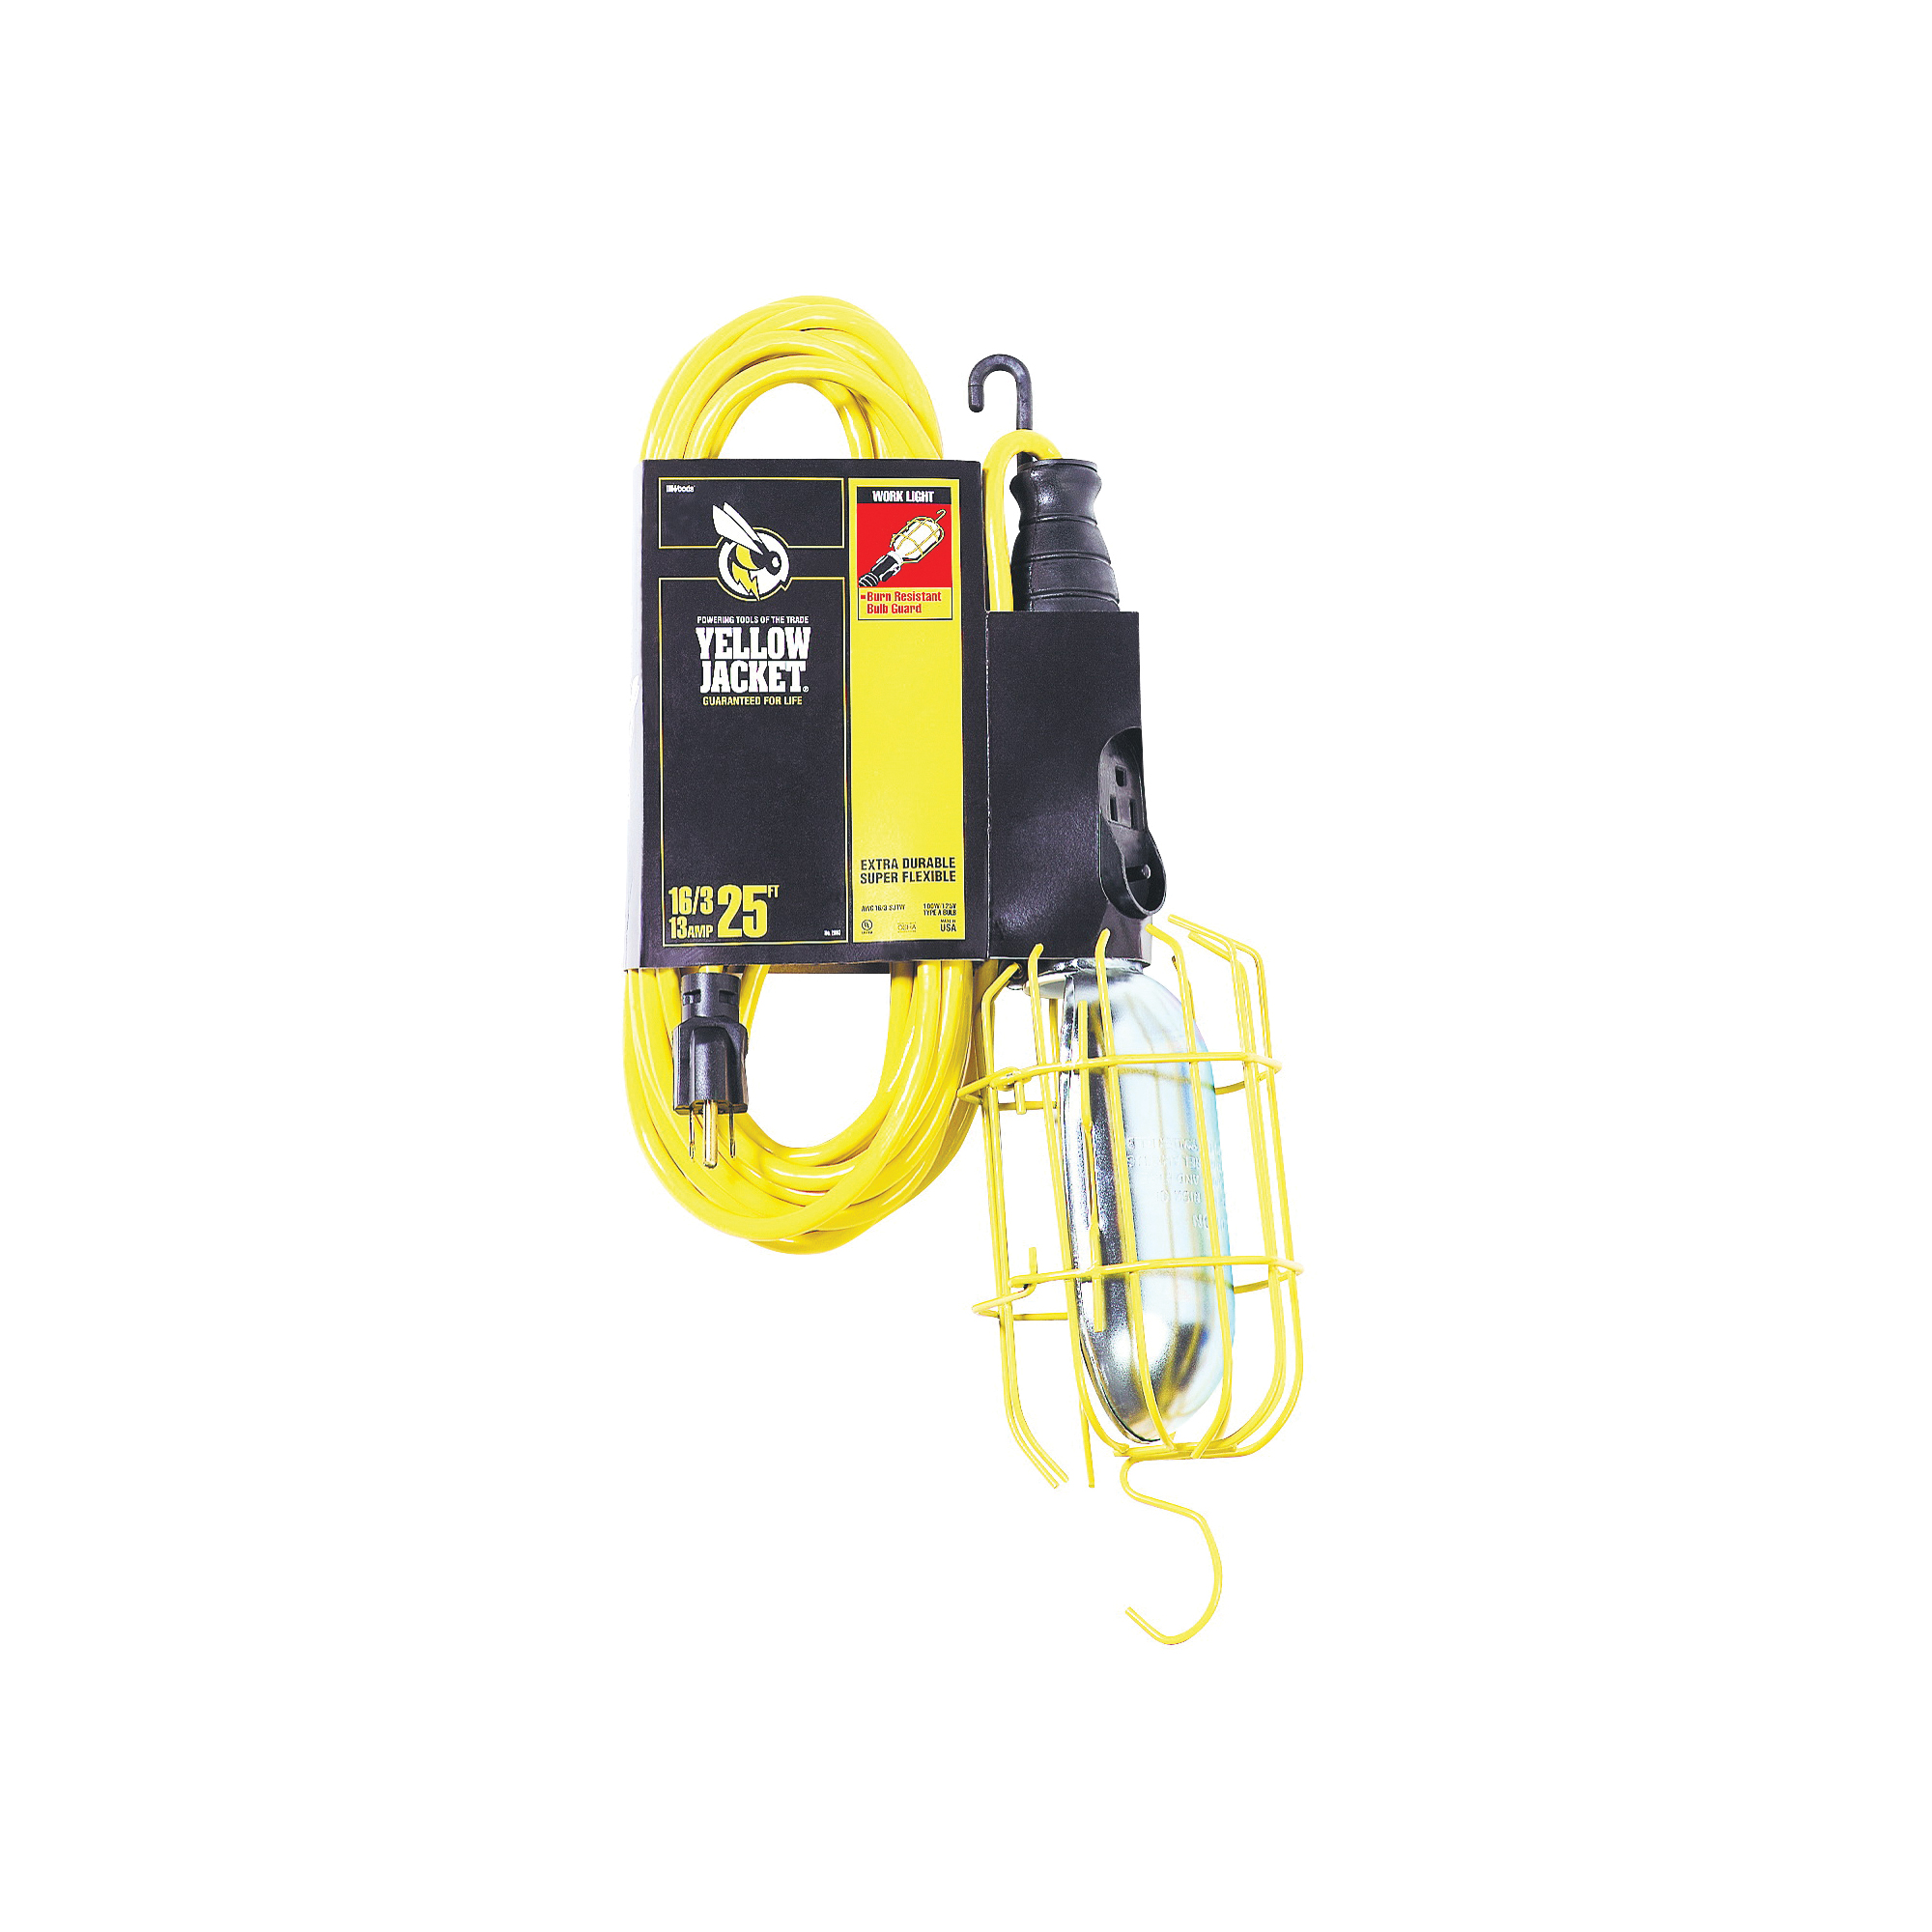 Picture of CCI 2893 Work Light with Outlet and Metal Guard, 12 A, 120 V, Incandescent Lamp, Yellow